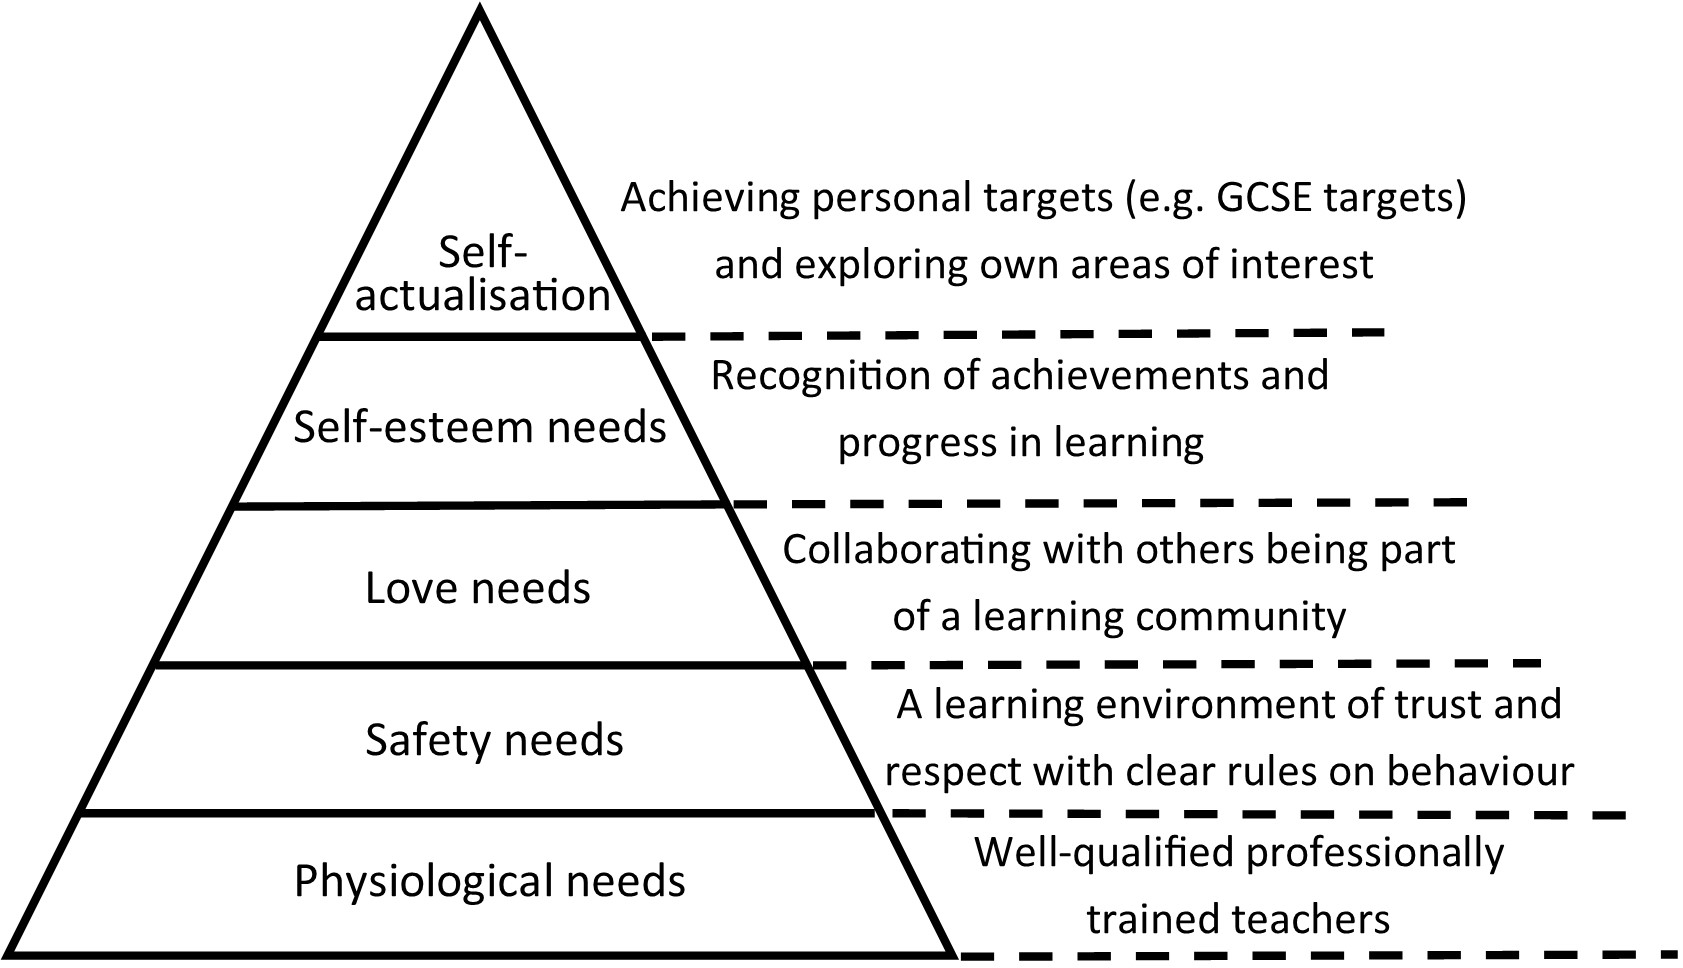 maslow theory of needs and it s implication for teaching and learning Abraham maslow's hierarchy of needs pyramid  after studying it over the past  couple of years, my graduate and undergraduate  of the pyramid, as students  and teachers alike place pins and post-its on the varying tiers.